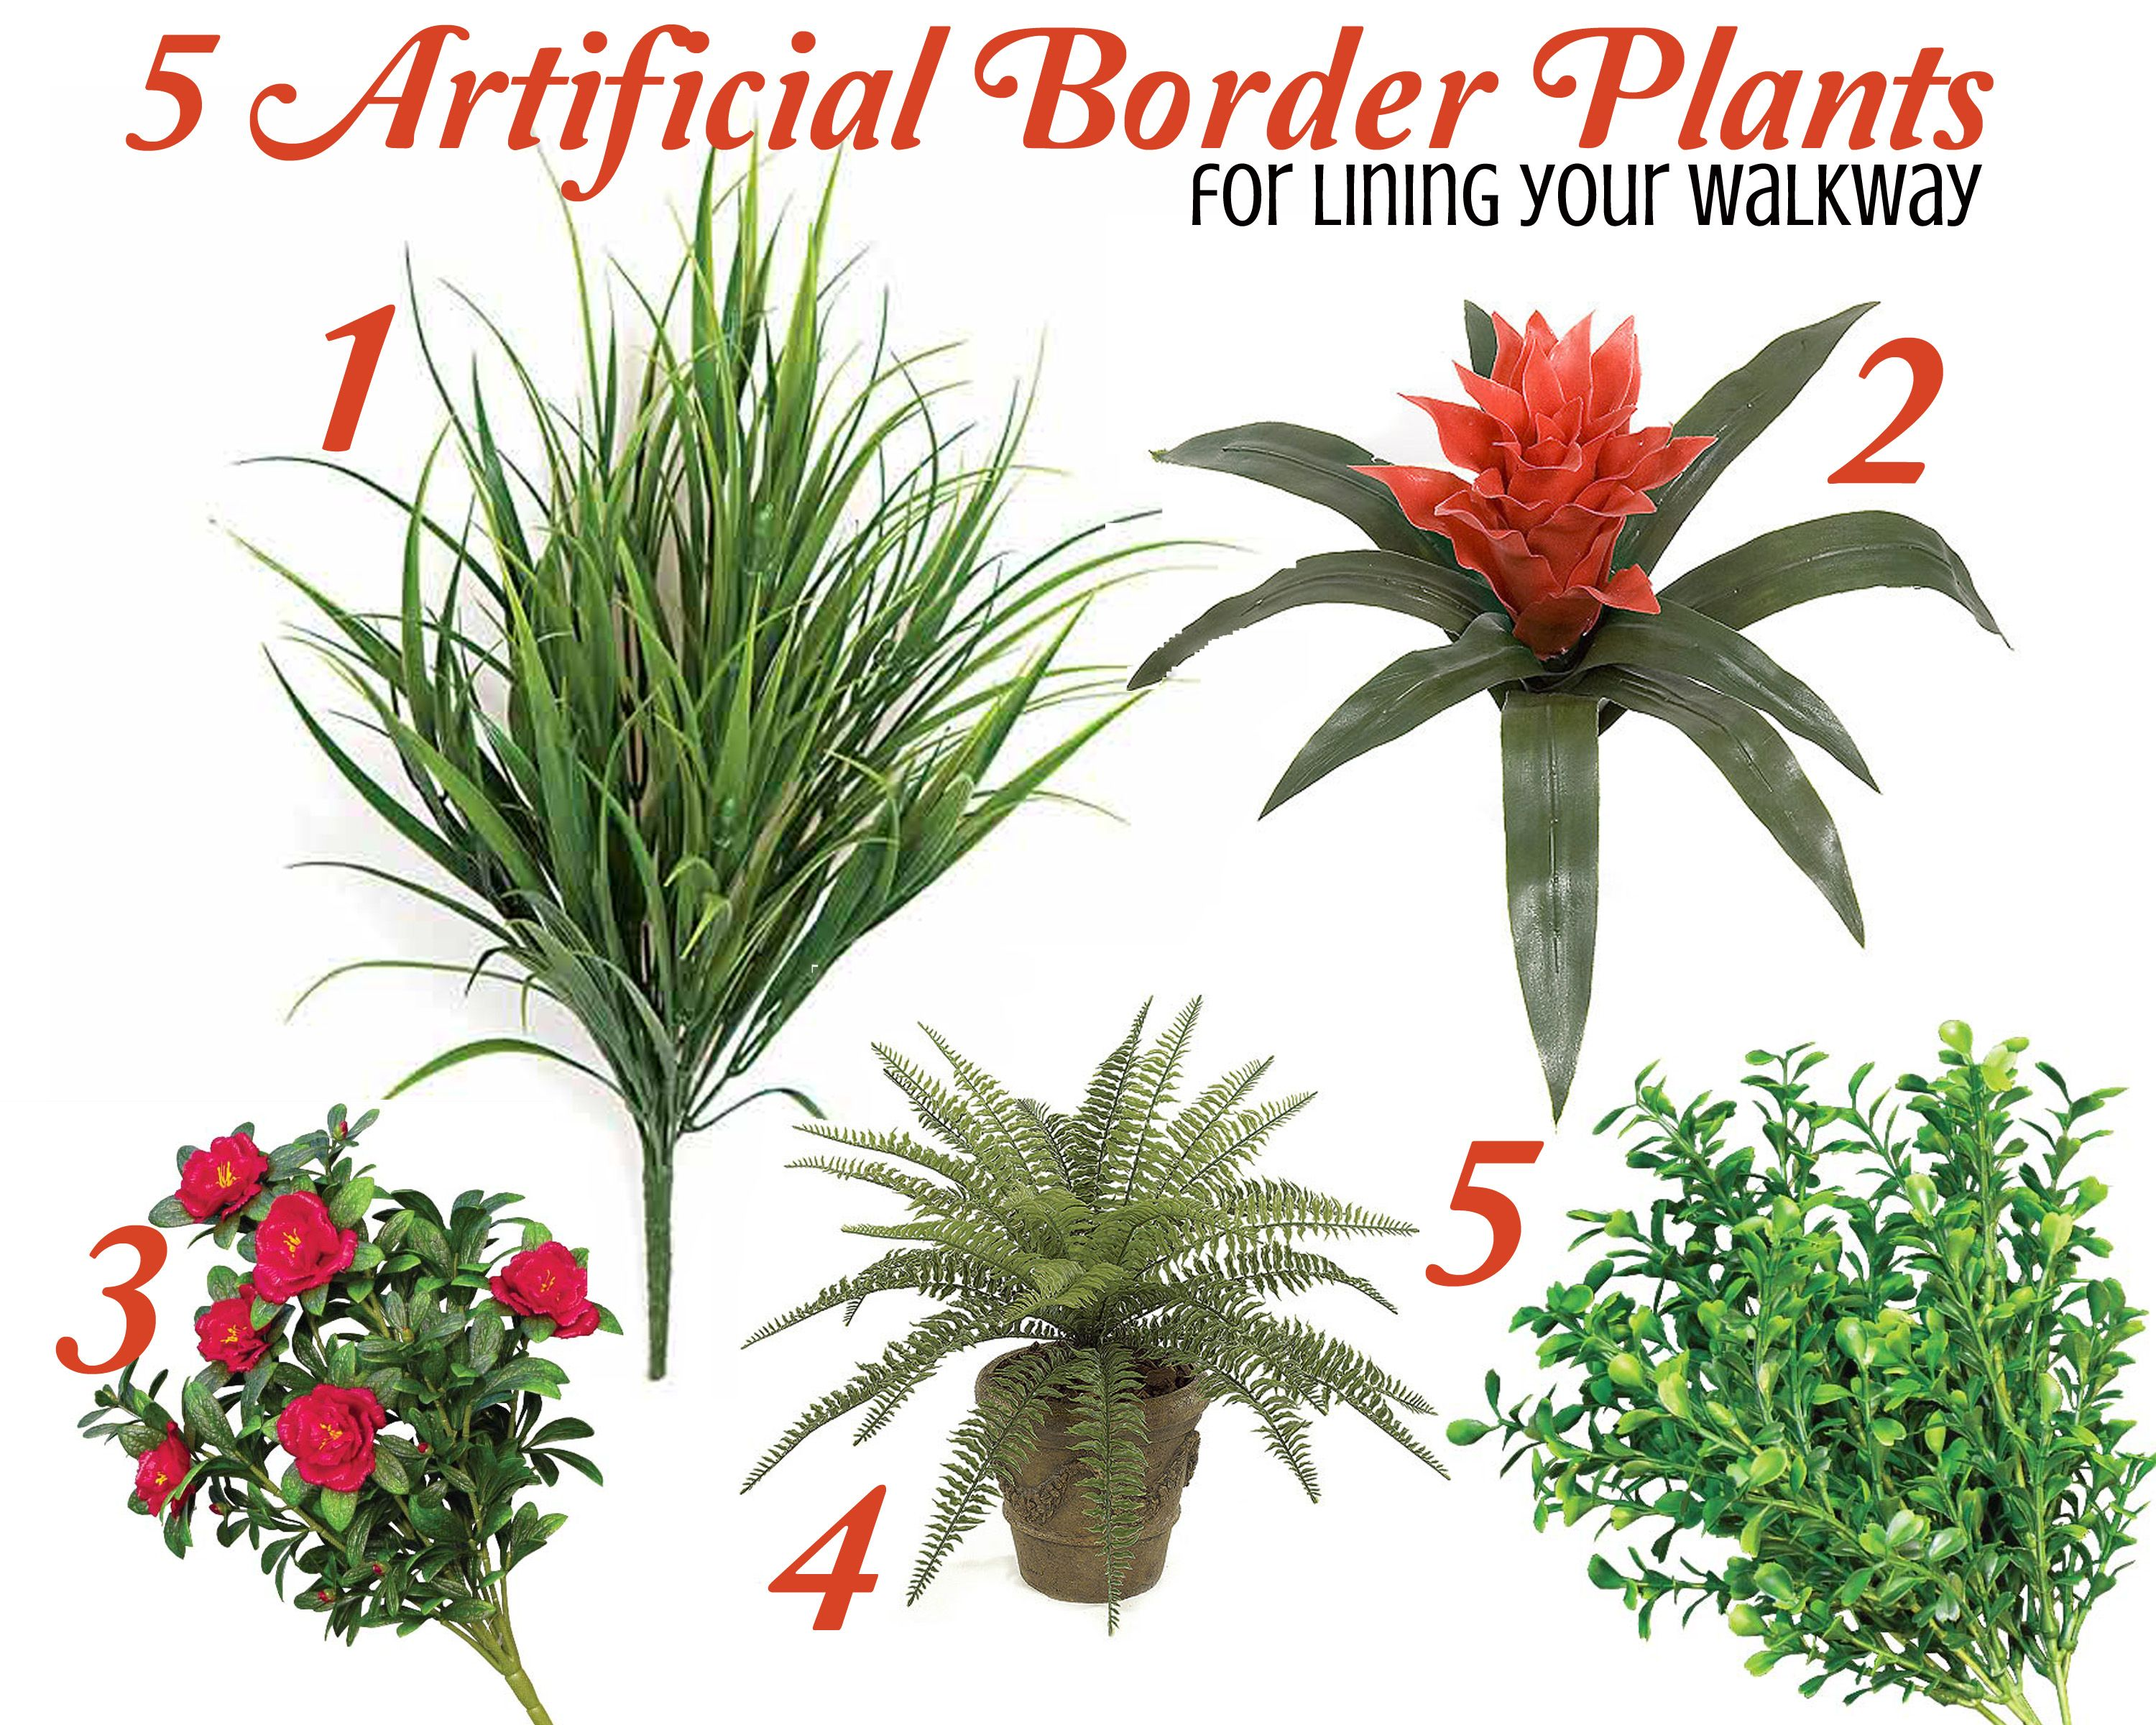 5 Artificial Border Plants To Line Your Walkway